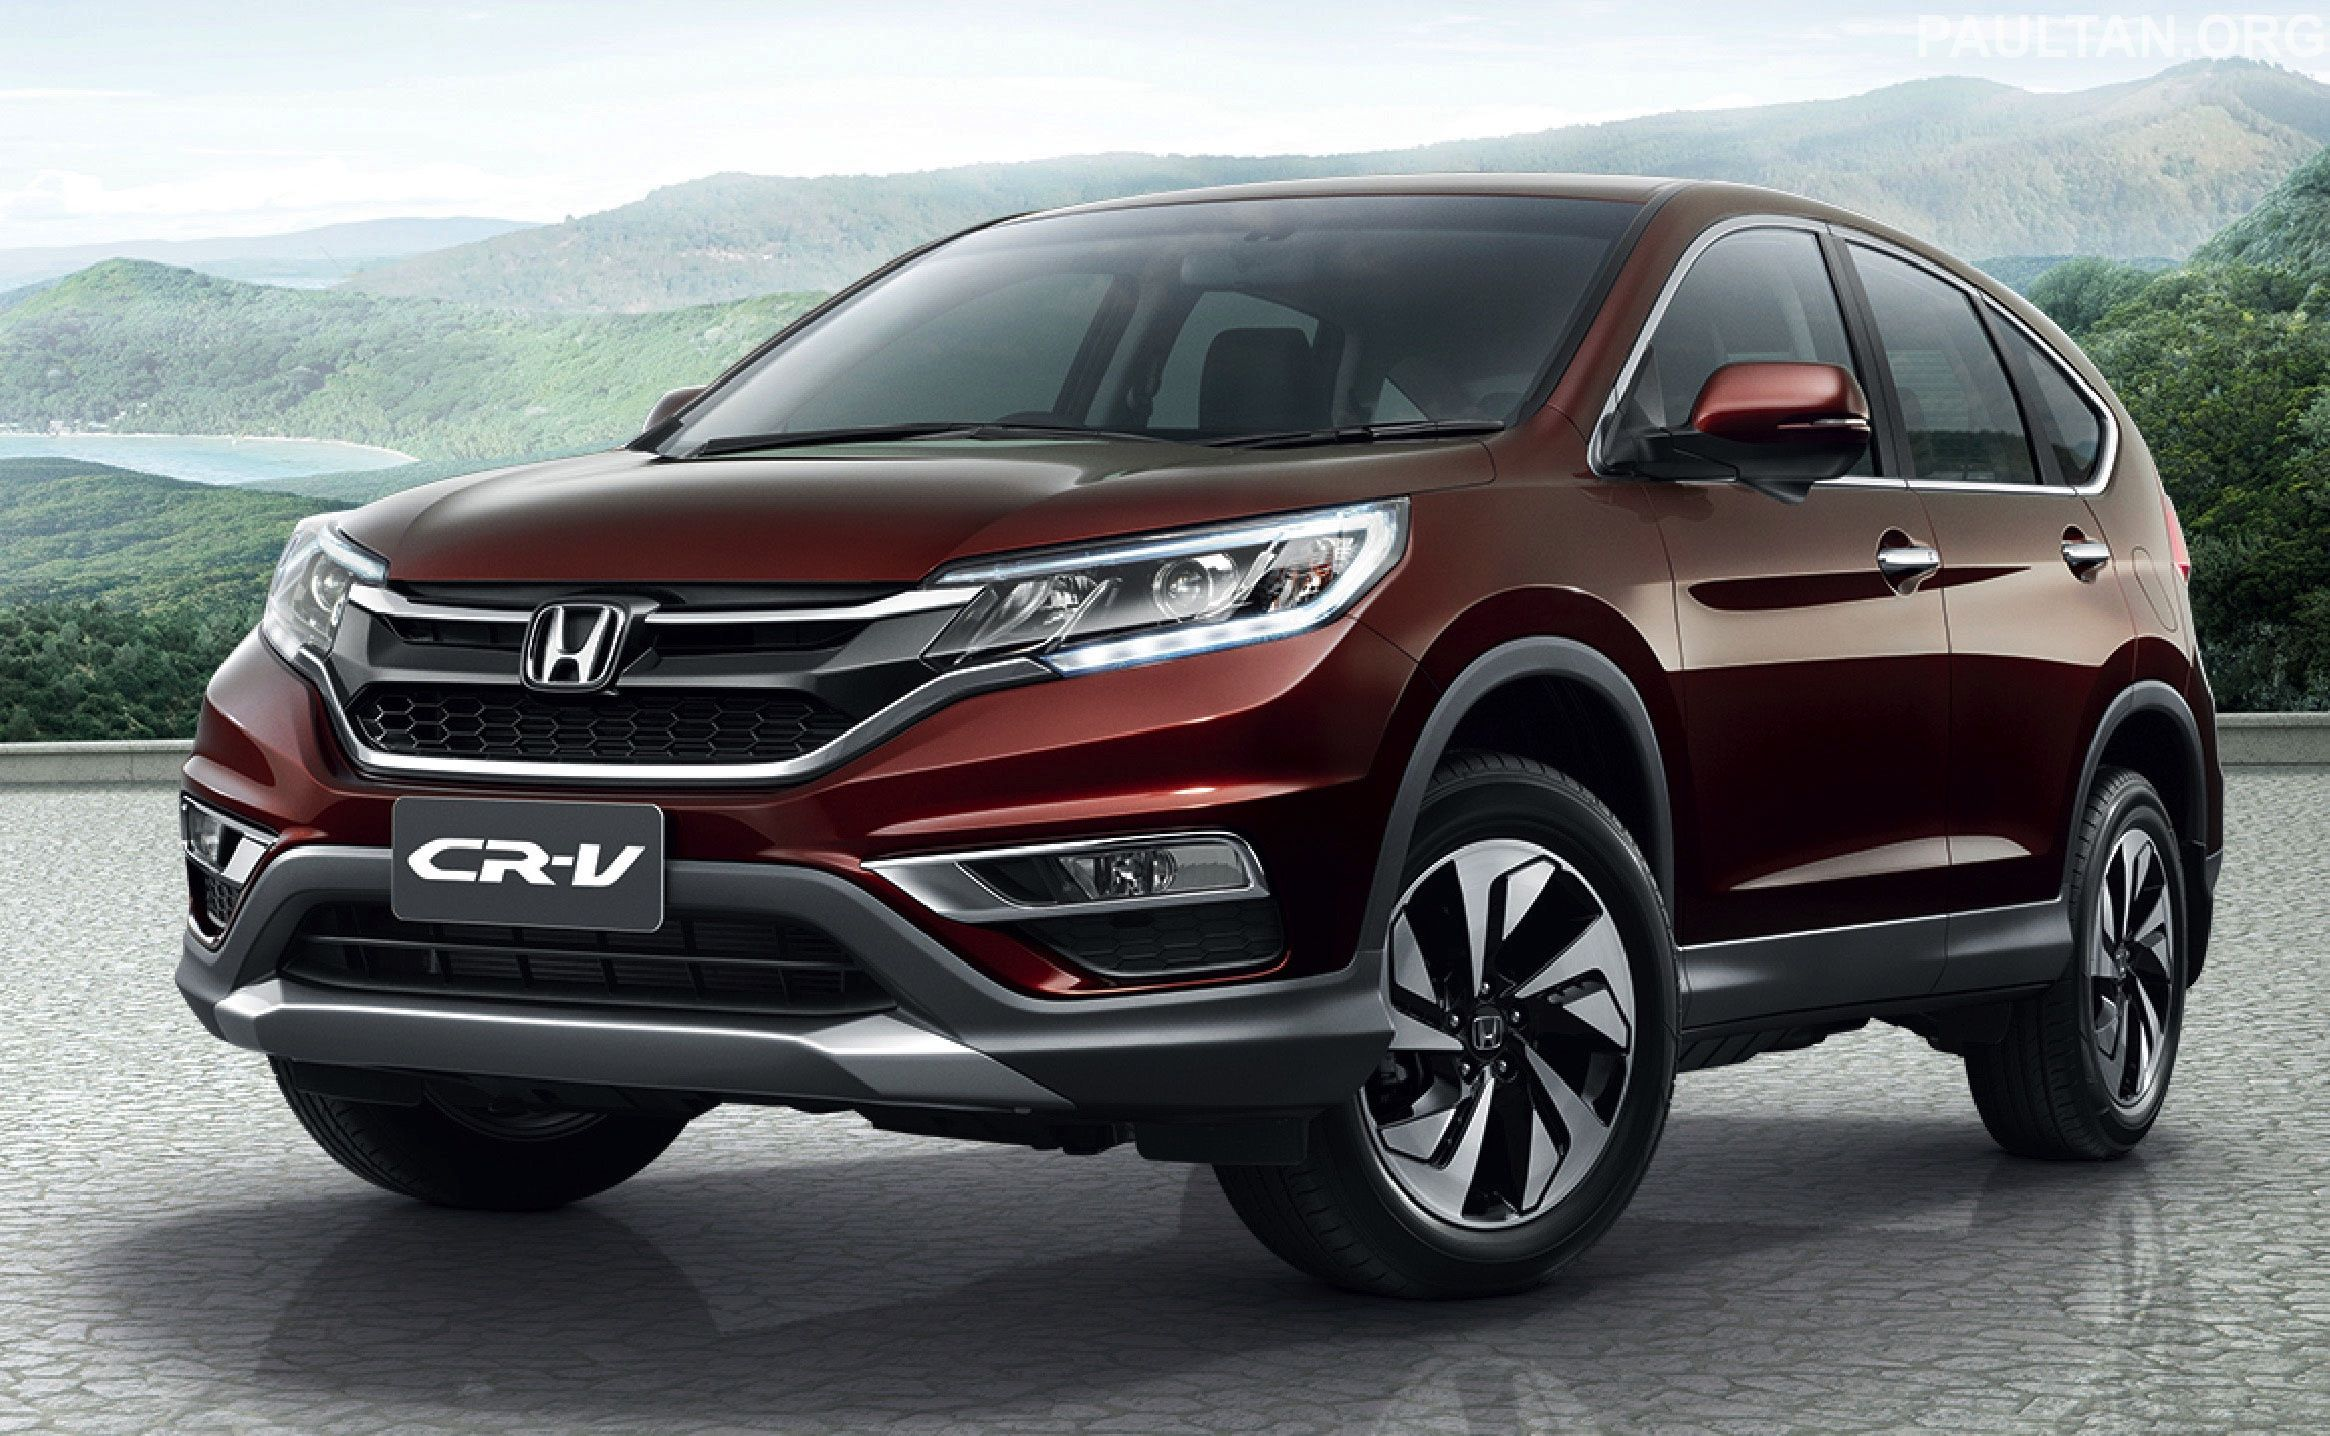 2017 honda crv redesign and changes auto prices and reviews pinterest honda crv honda and honda cr